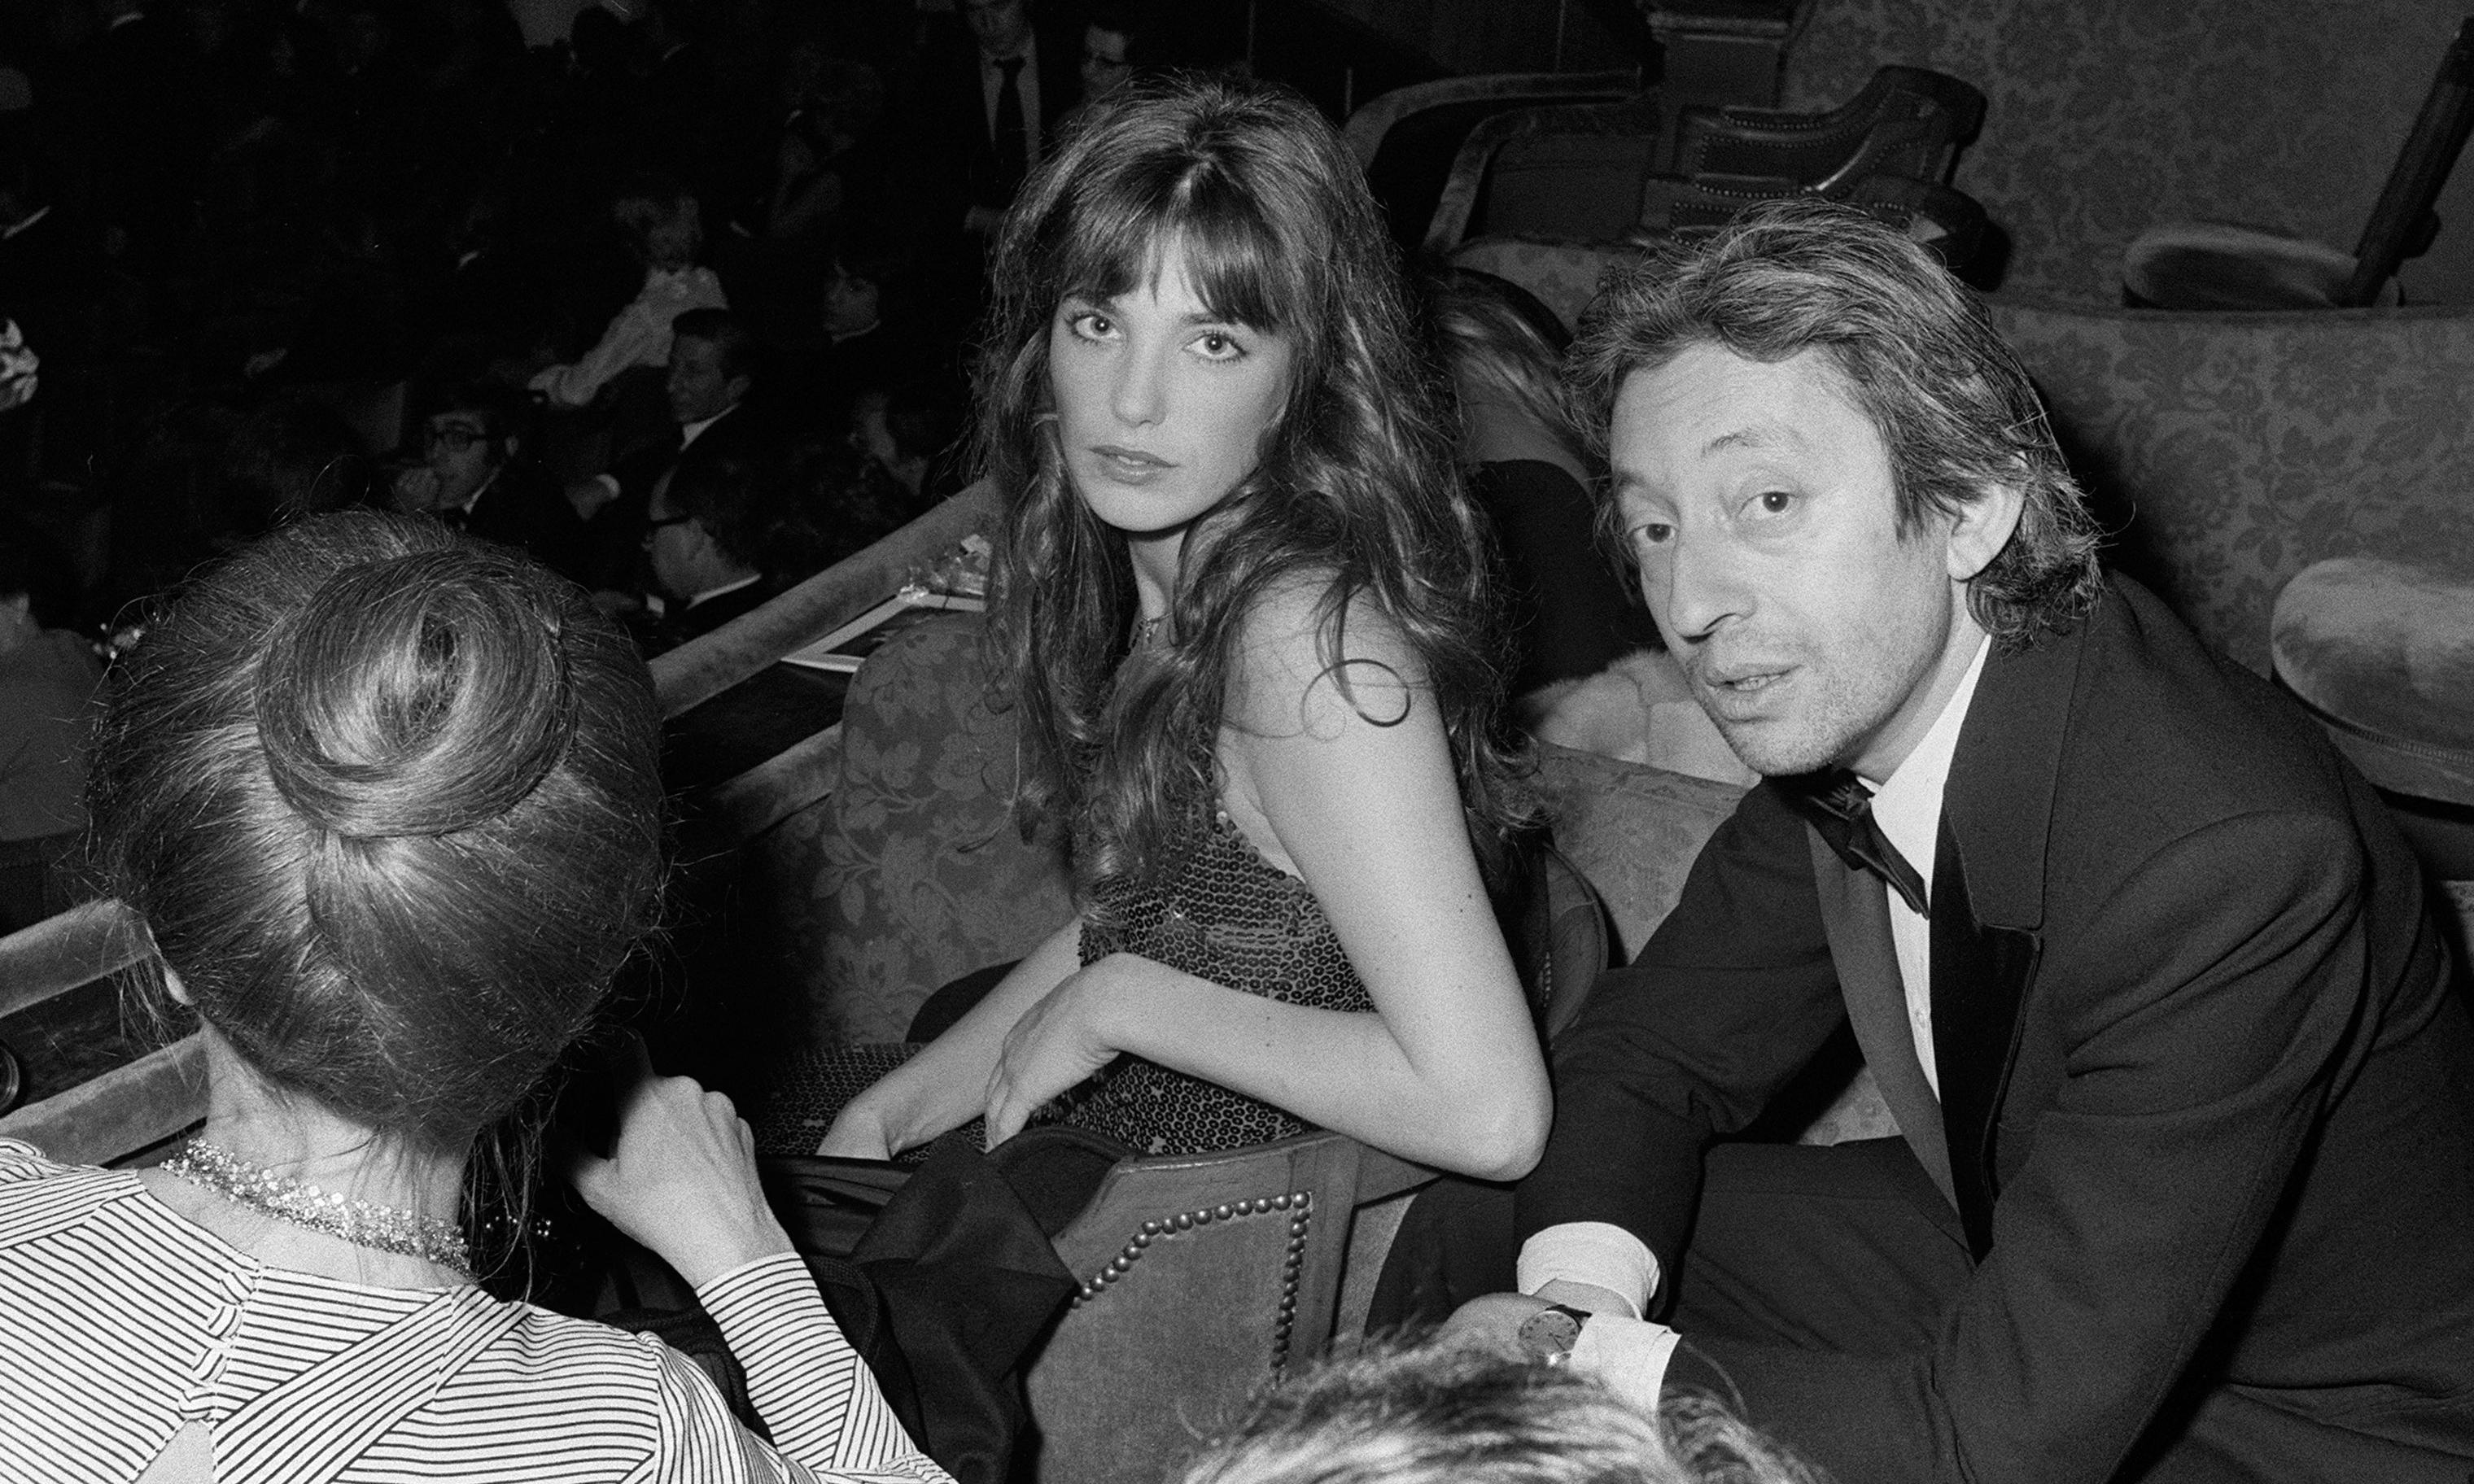 'He was a great man. I was just pretty': photos tell story of Jane and Serge